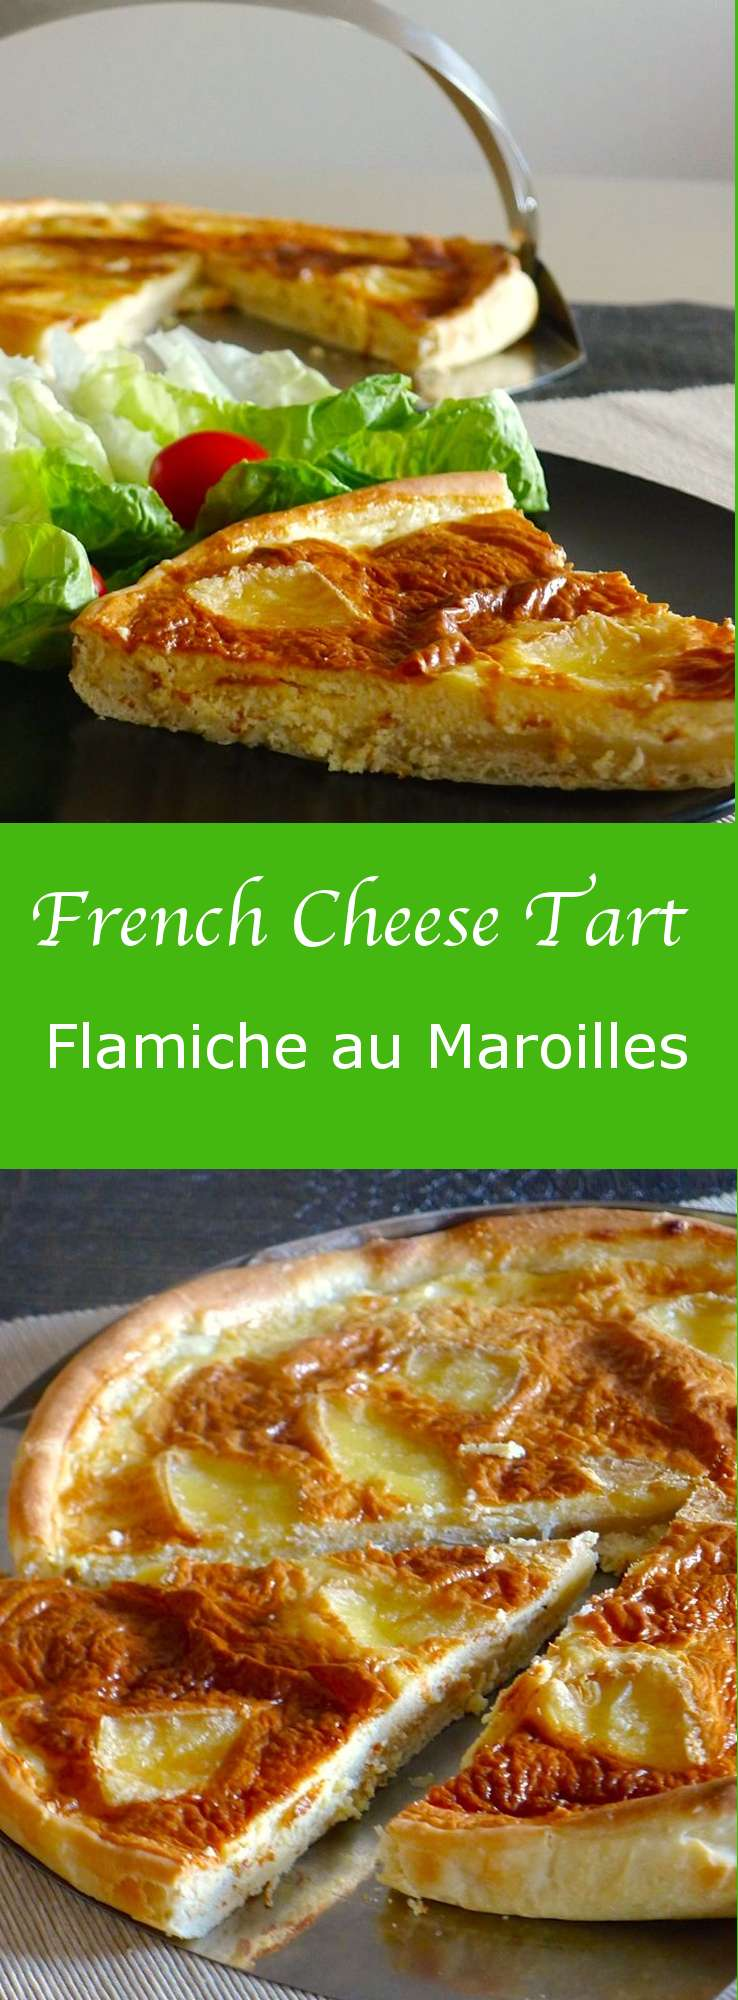 Flamiche au Maroilles, a traditional recipe from the North of France was born on a day when a woman went to Dinant to sell her farm products at the market.